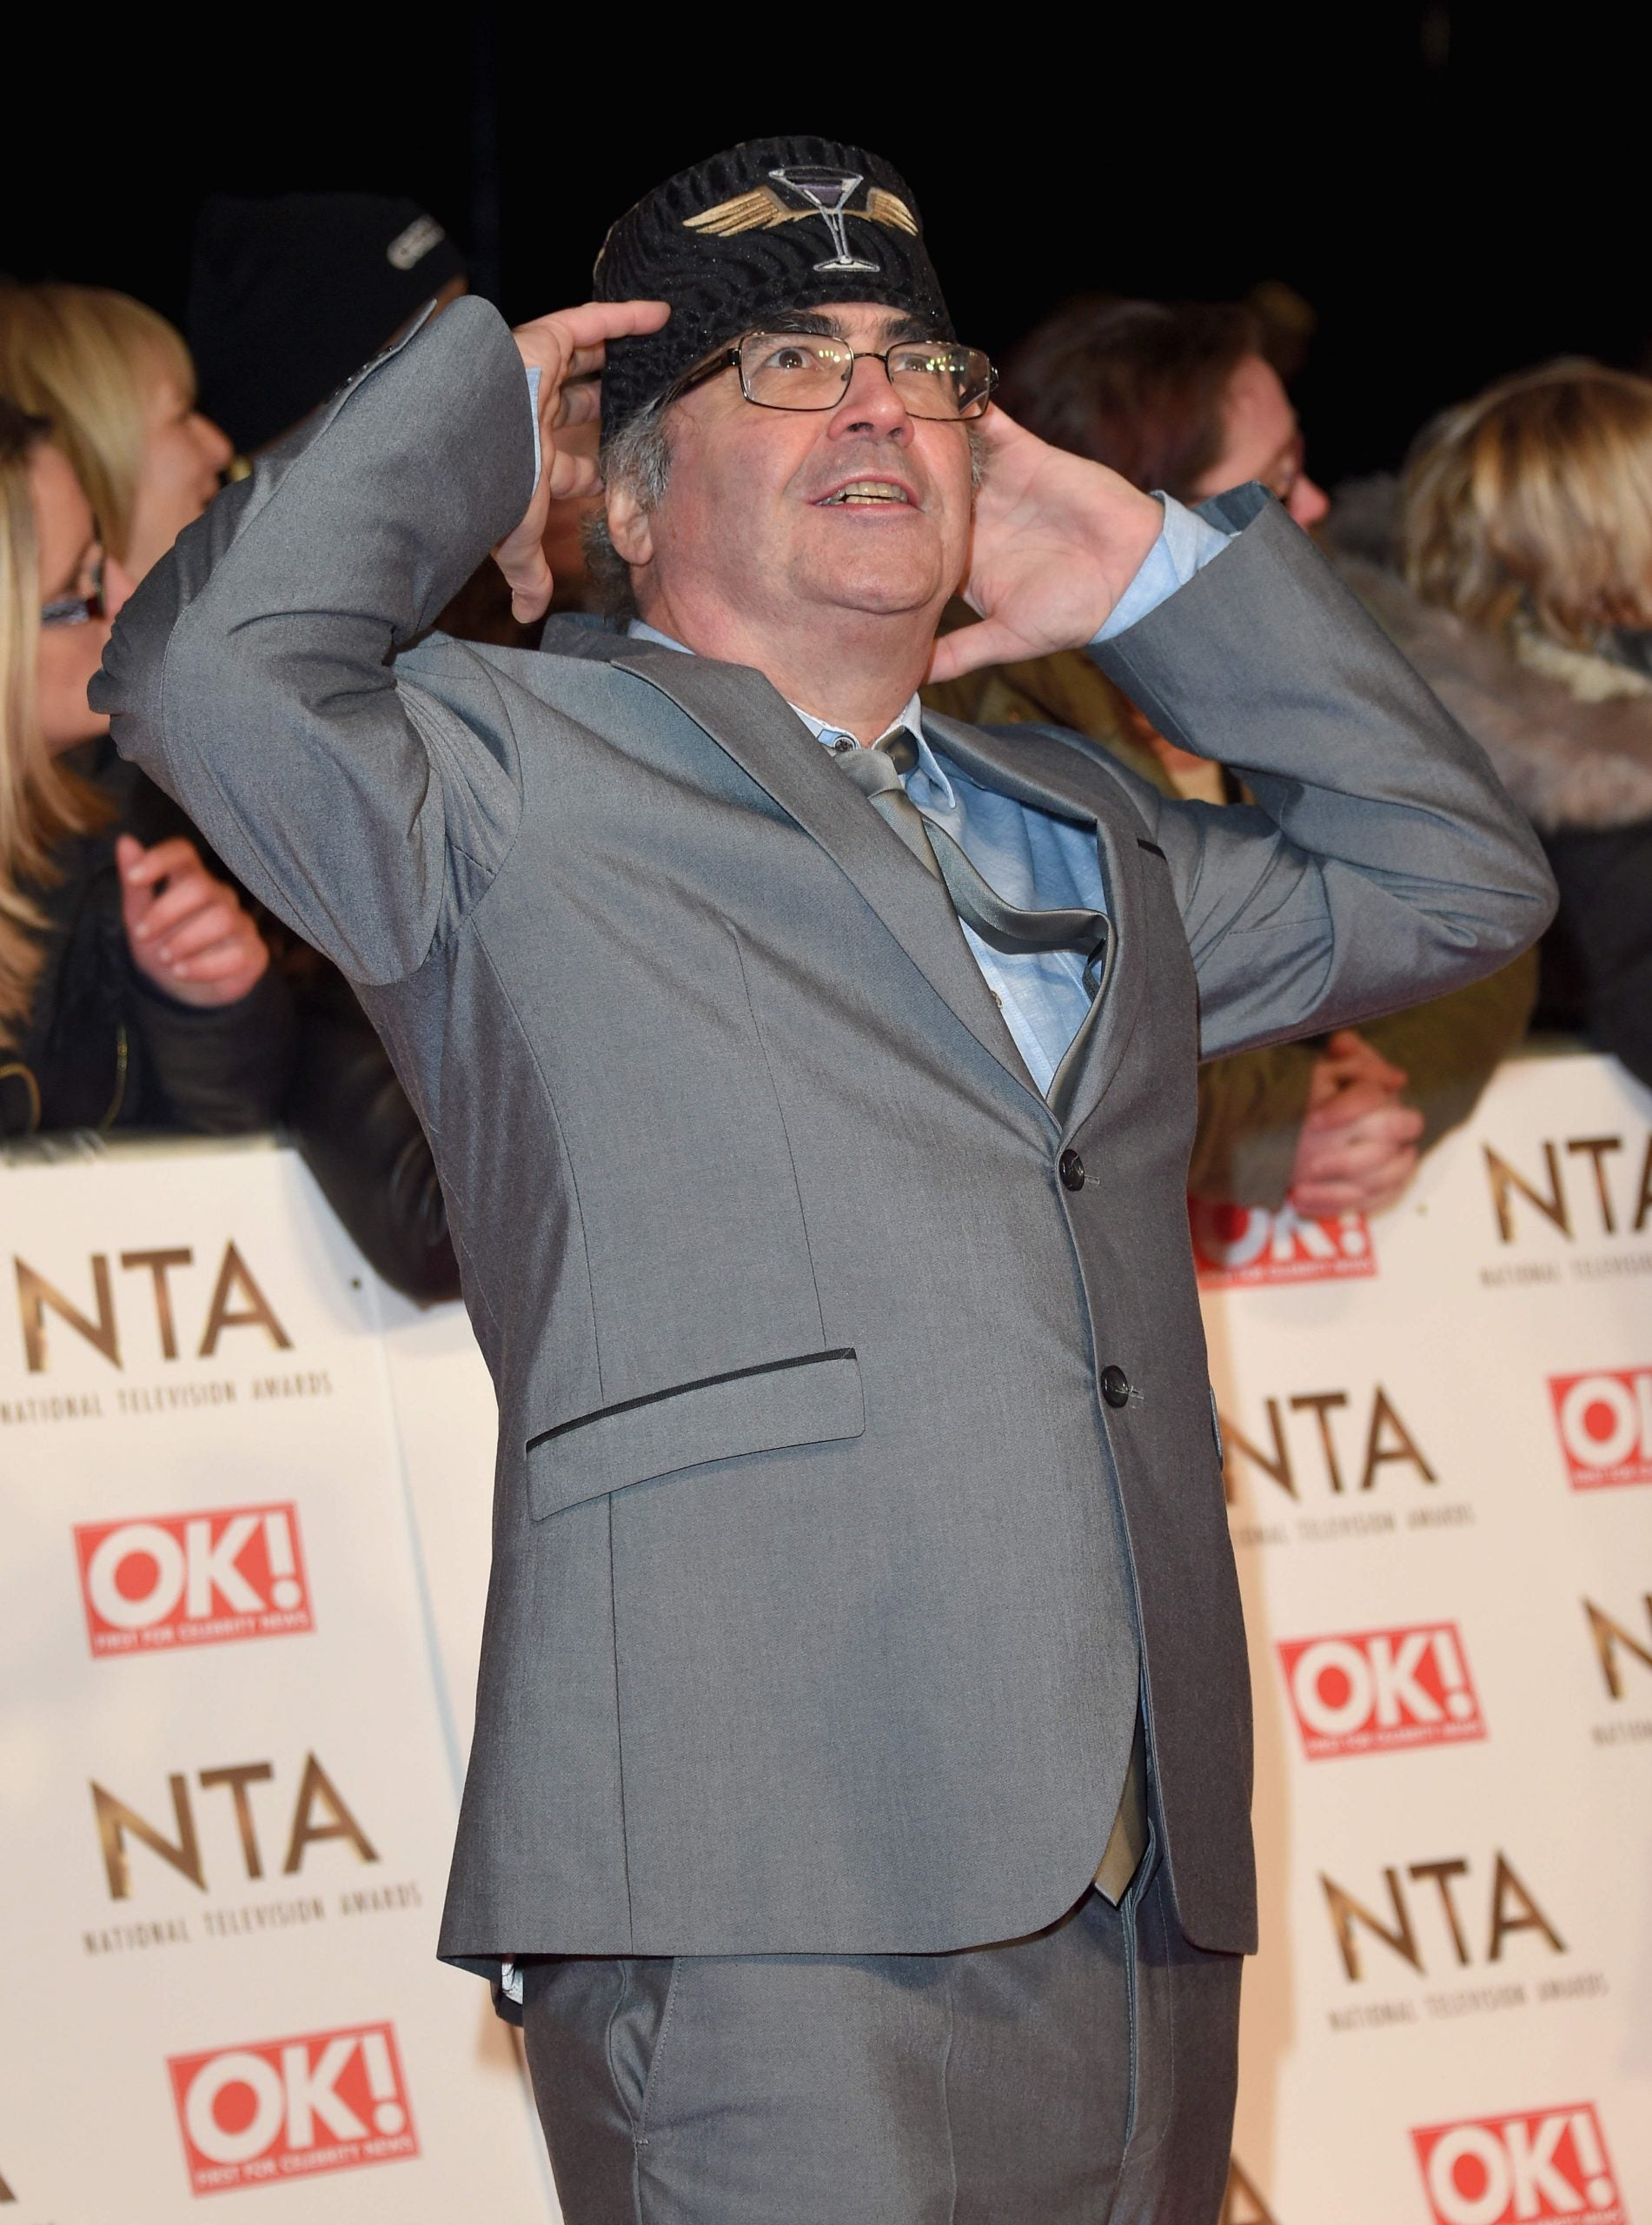 David Hepworth's diary: Chatting with Danny Baker, pontificating about Bob Dylan